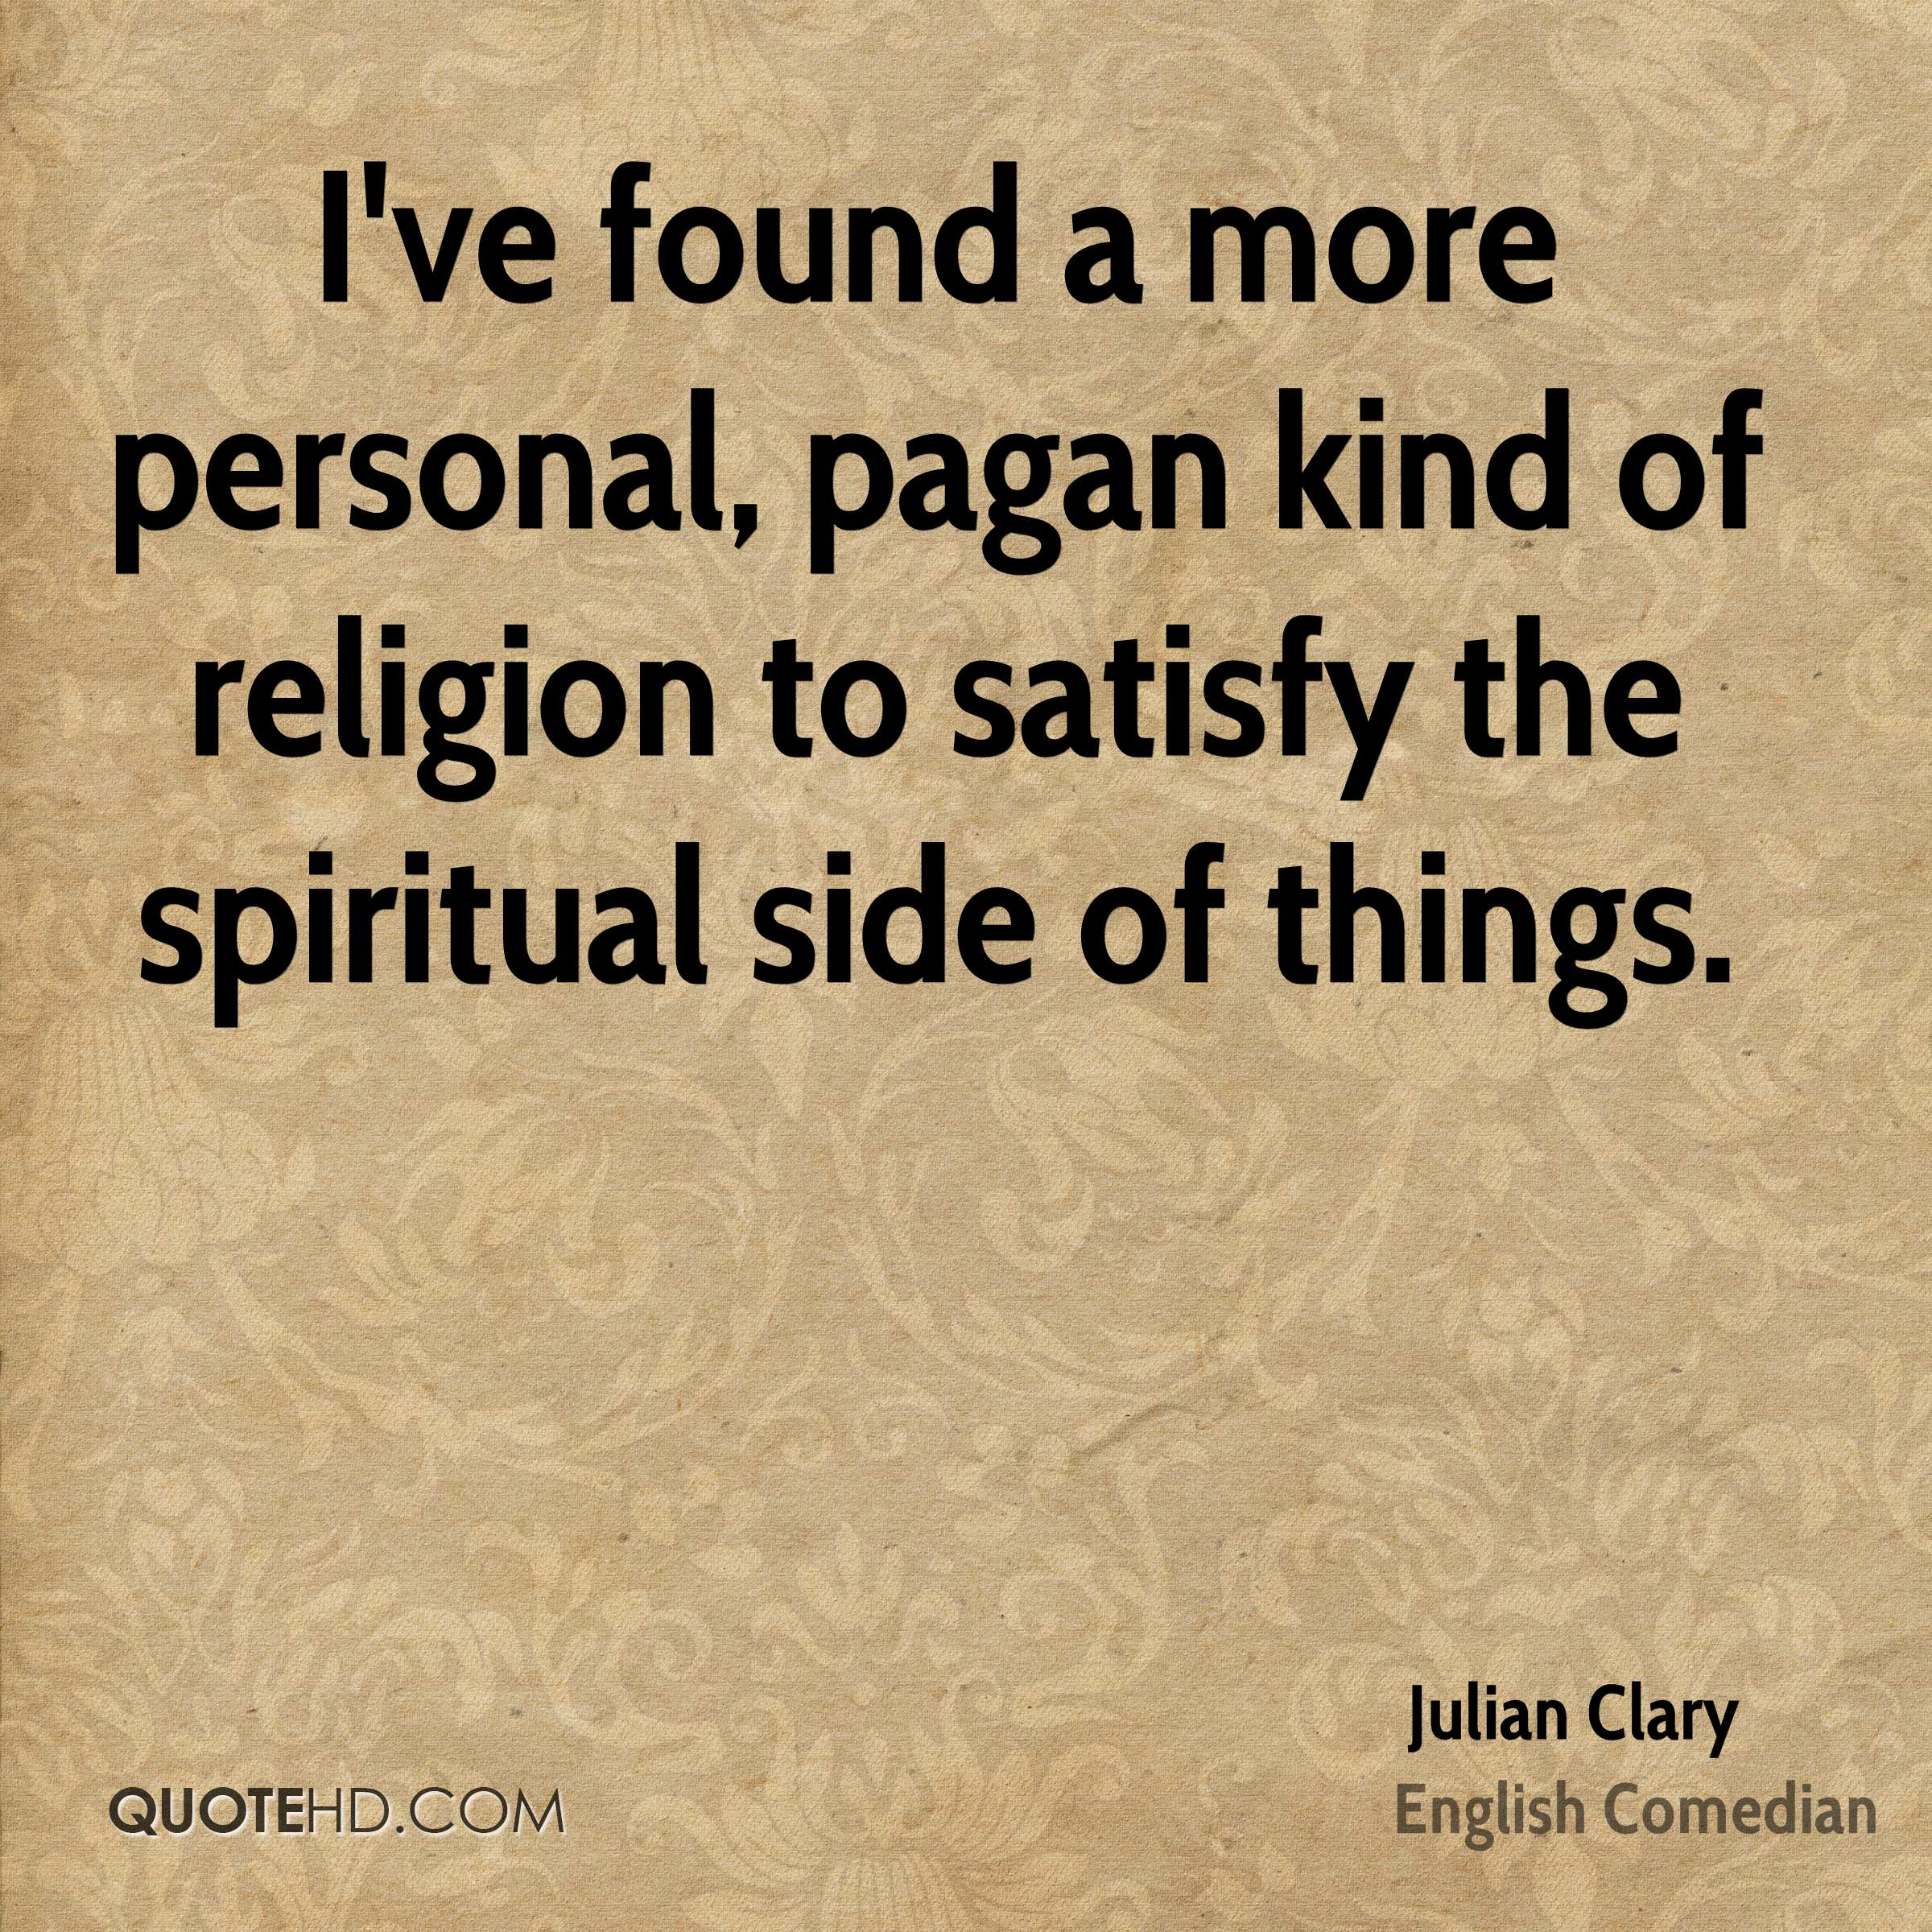 I've found a more personal, pagan kind of religion to satisfy the spiritual side of things.